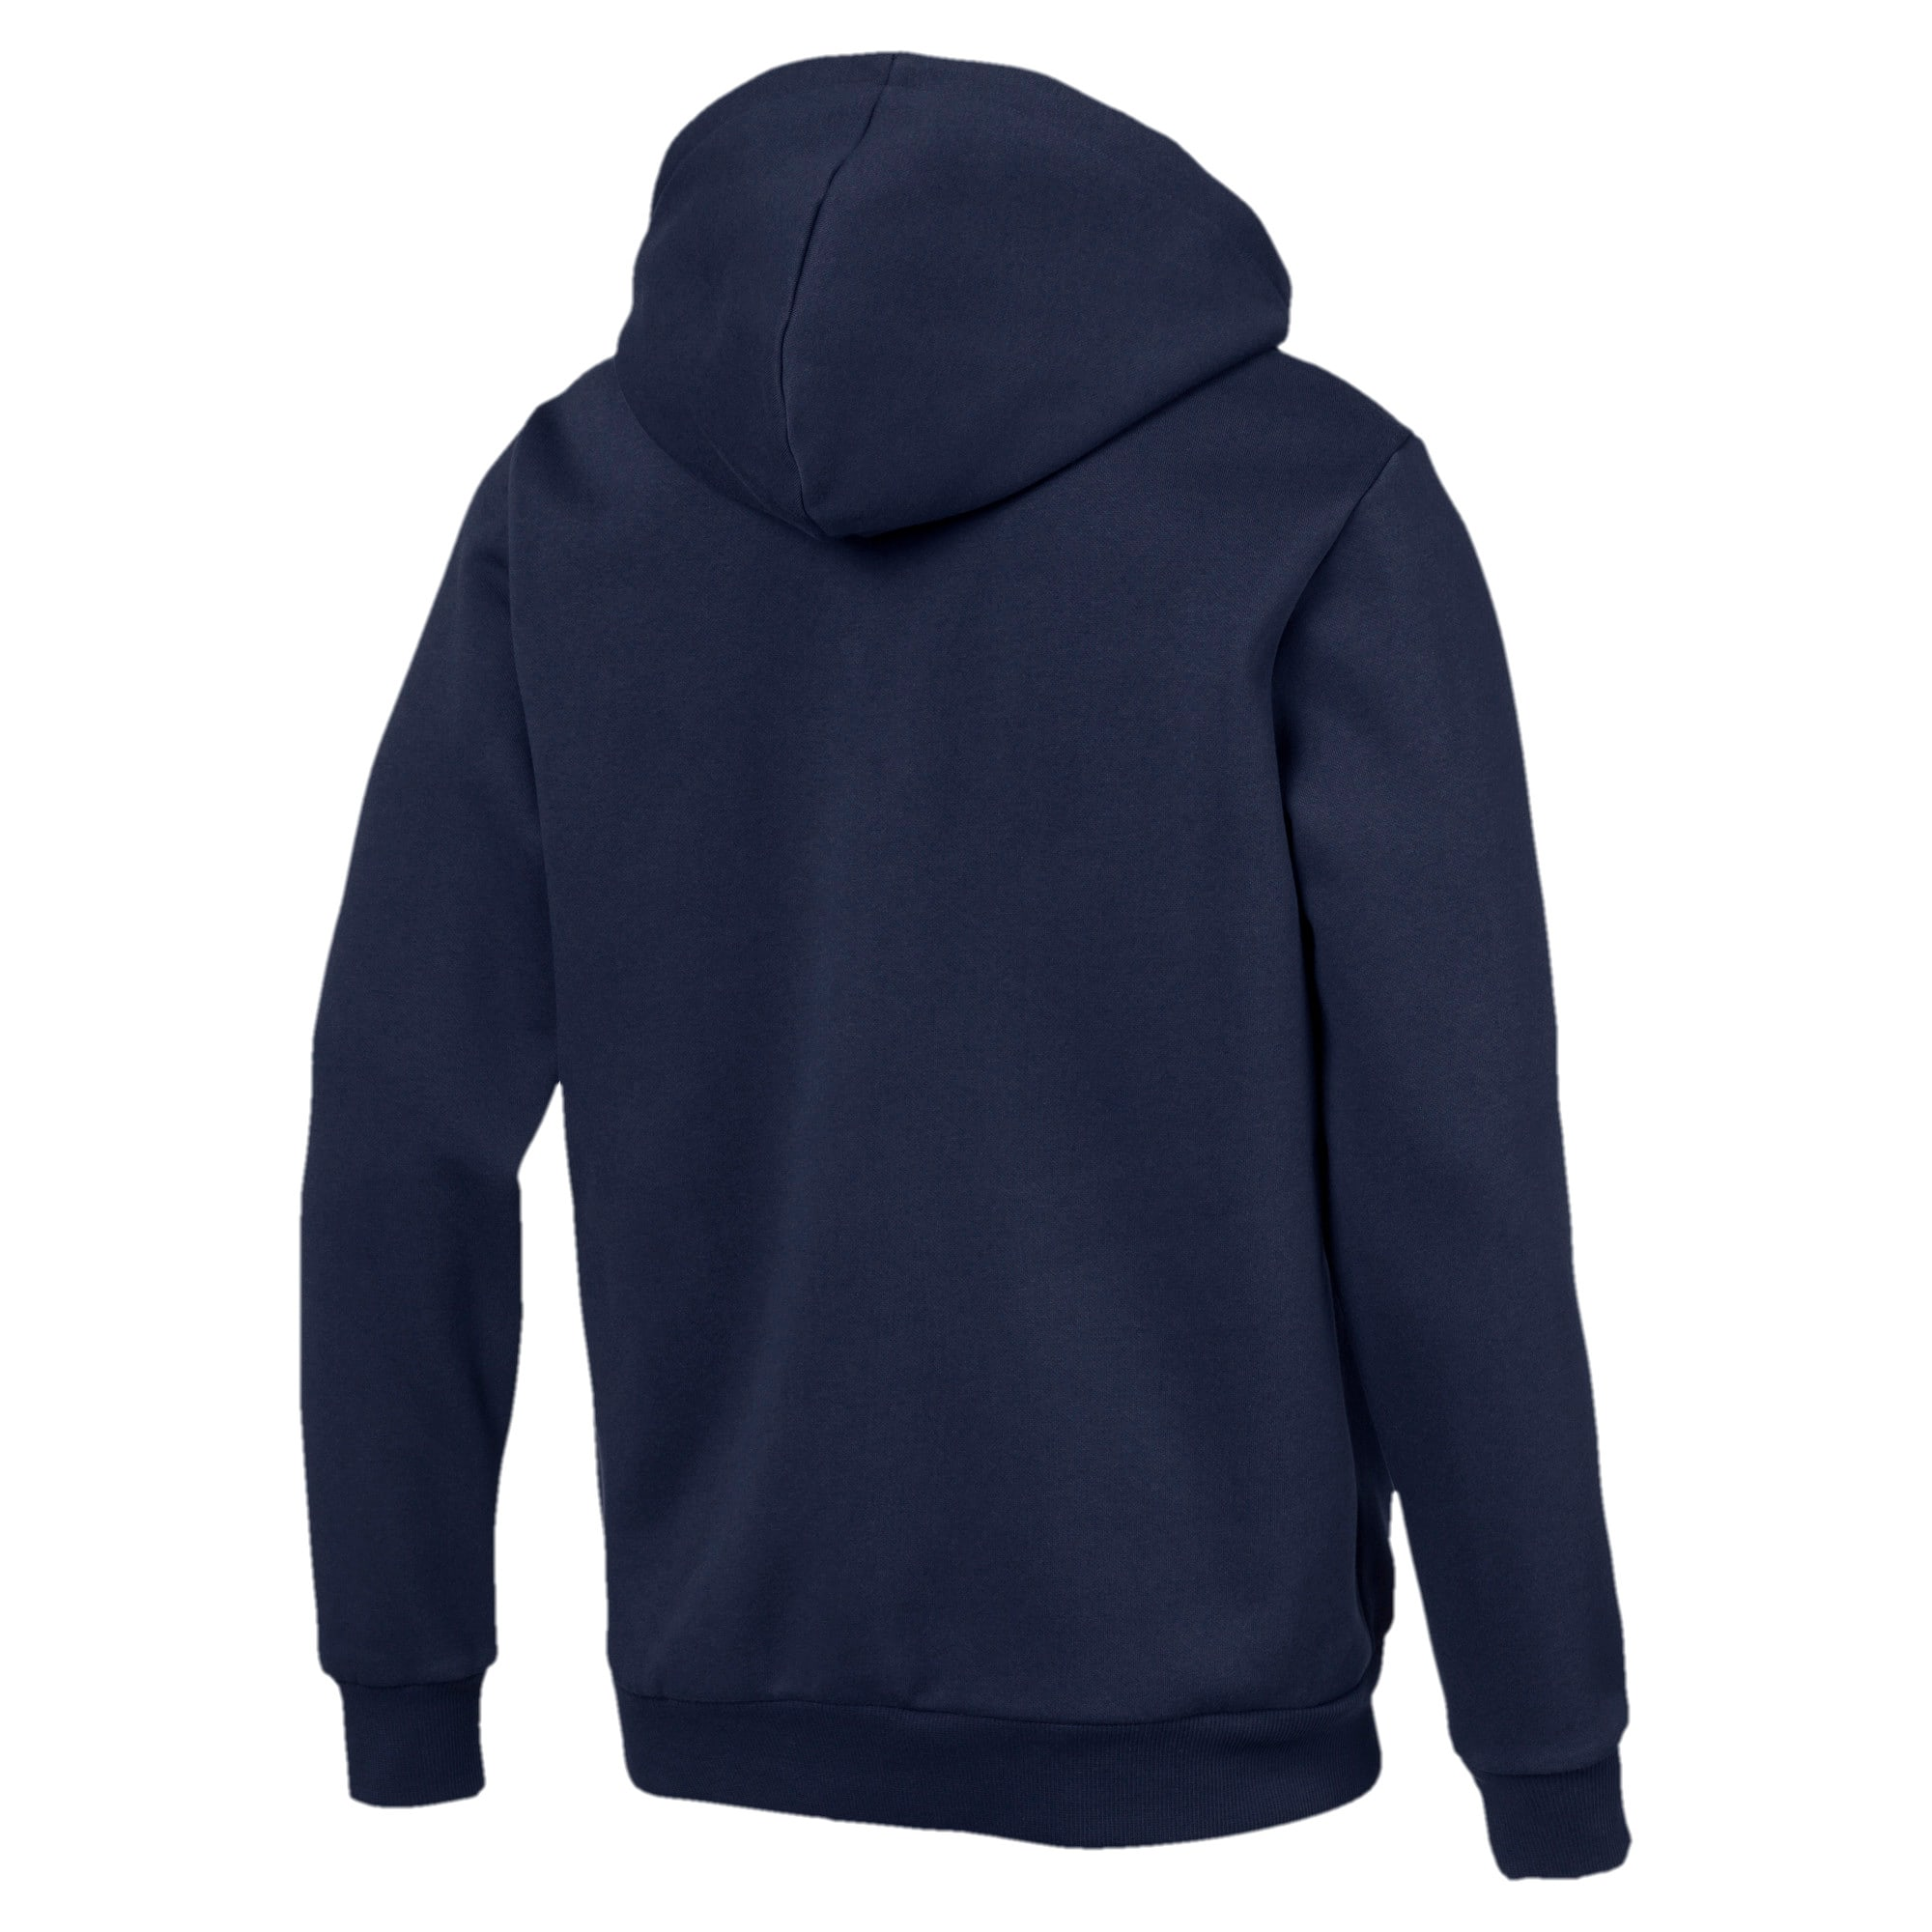 Thumbnail 2 of Essentials Men's Hooded Fleece Logo Jacket, Peacoat, medium